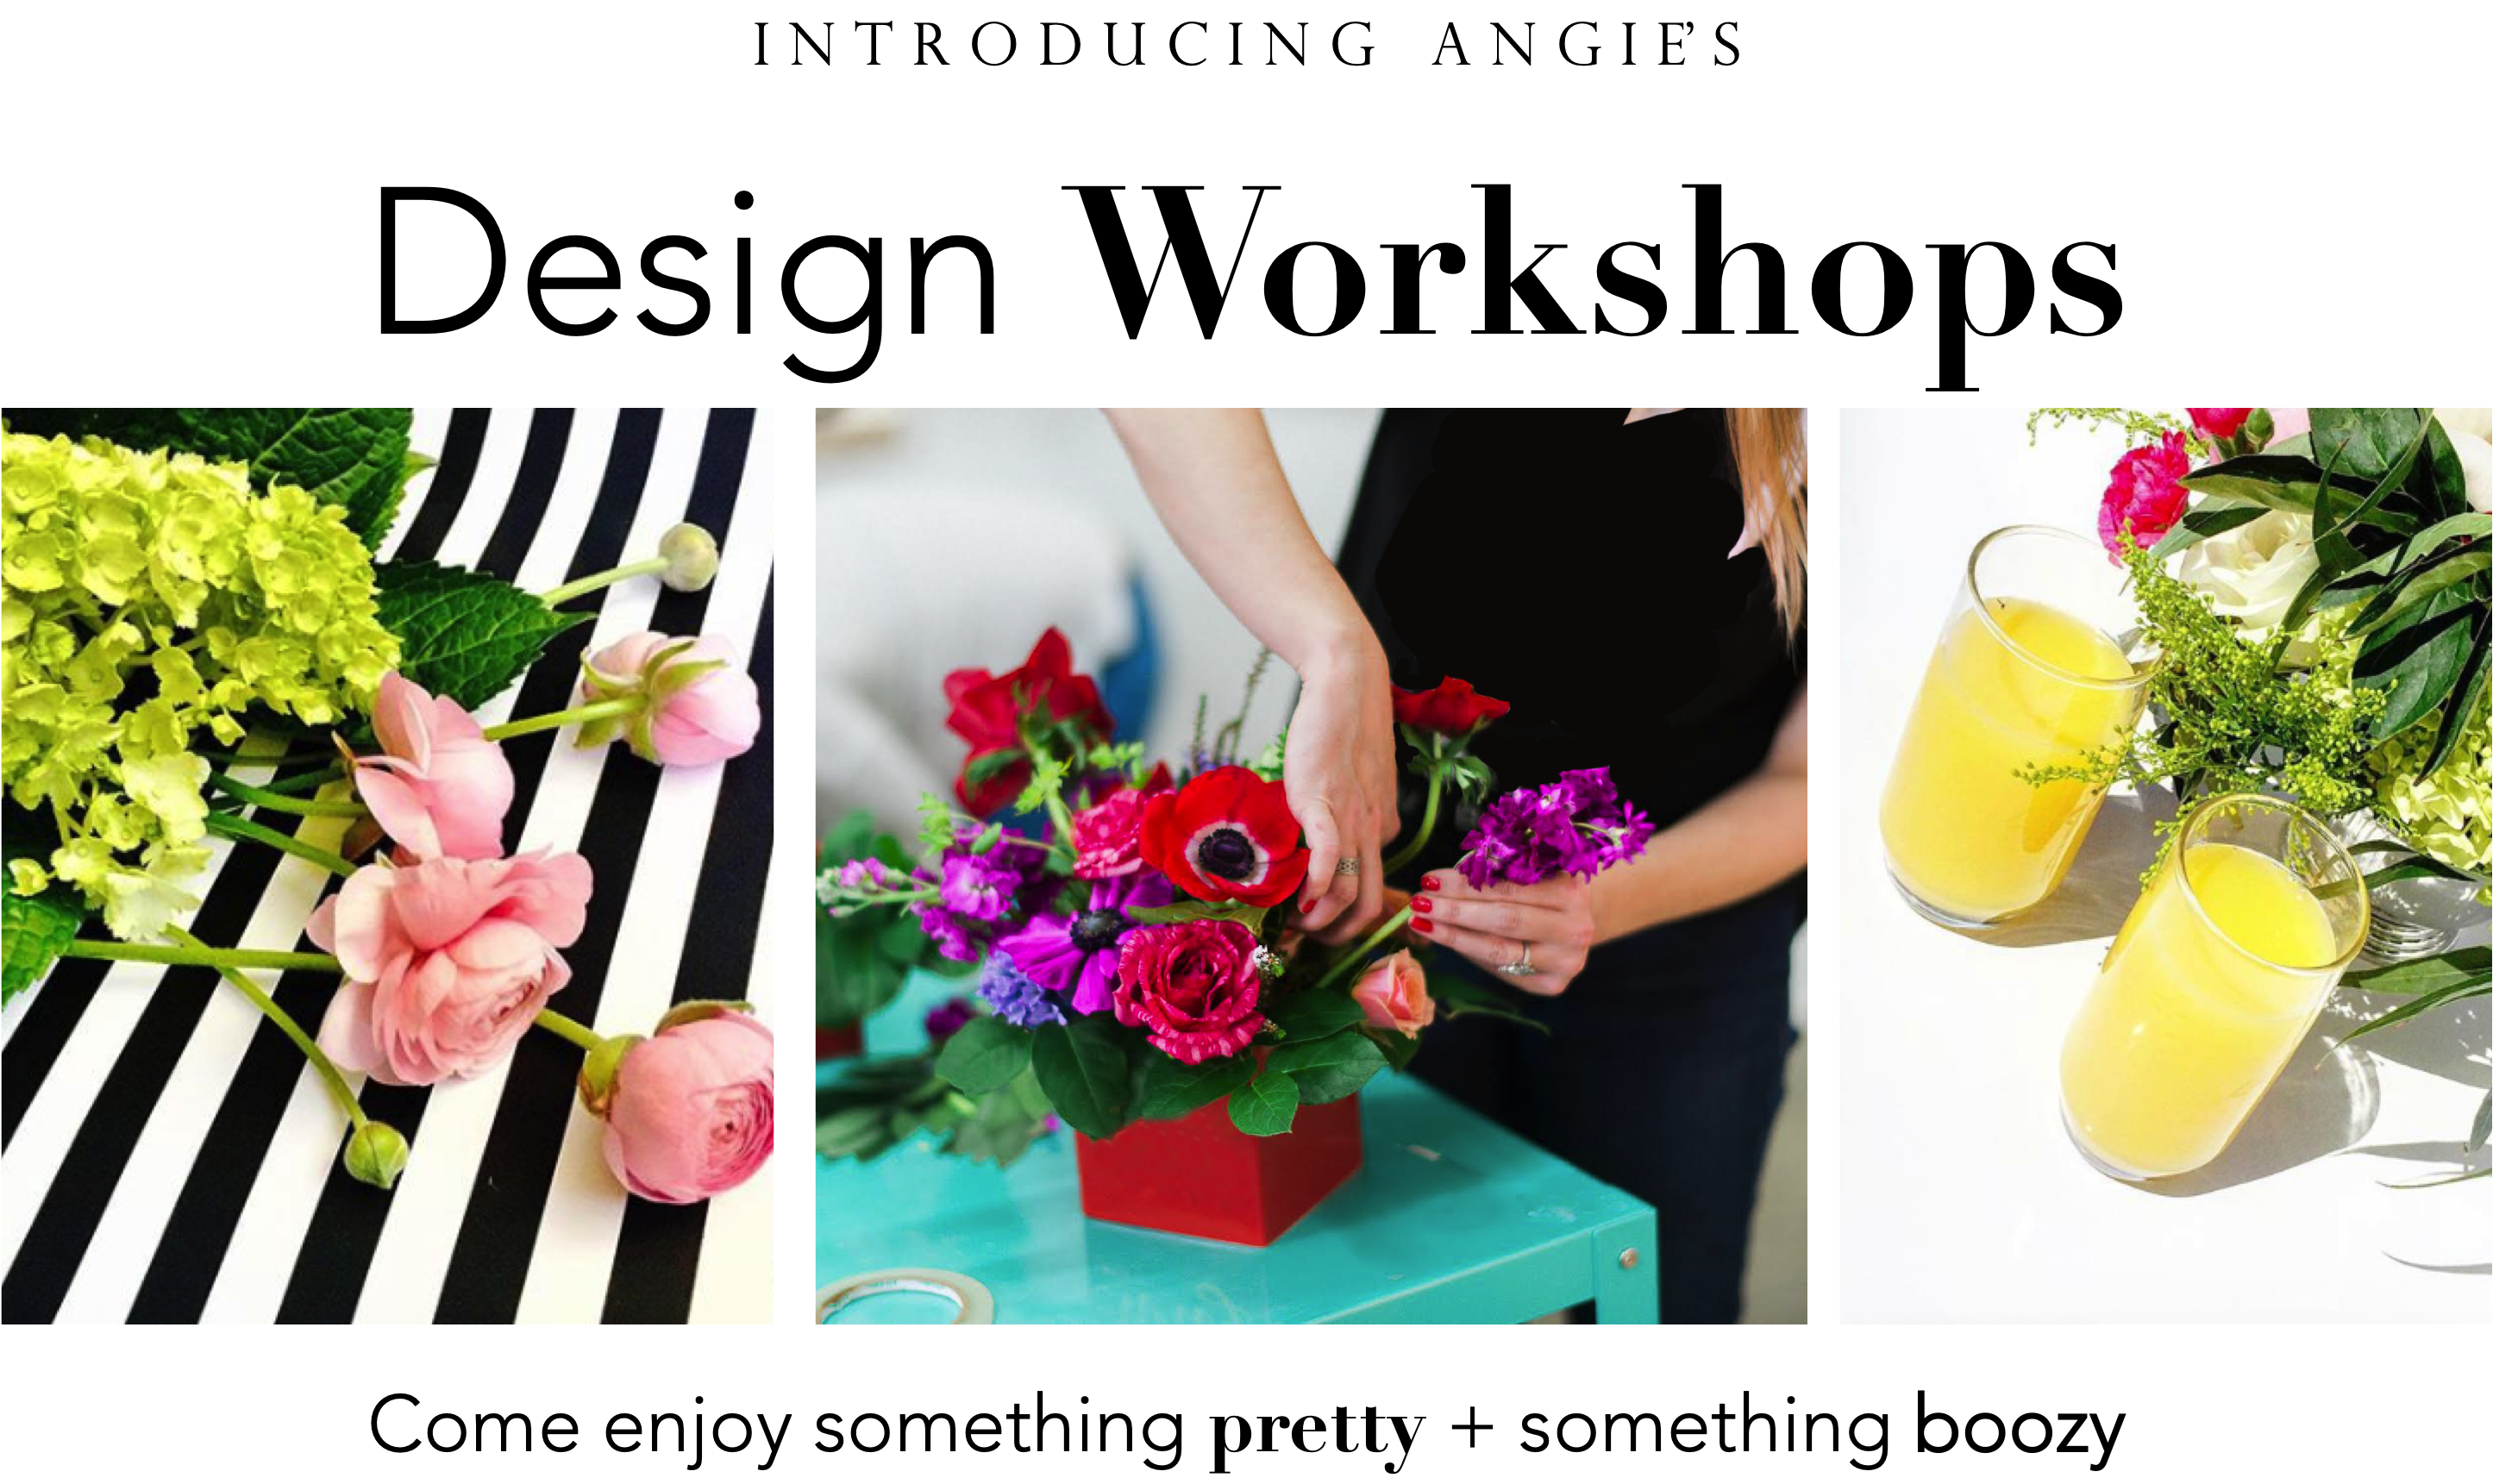 0-angies-floral-designs-workshops-el-paso-floral-workshops-classes-florales-floral-design-workshops-el-paso-texas-79912-angies-flower-.png